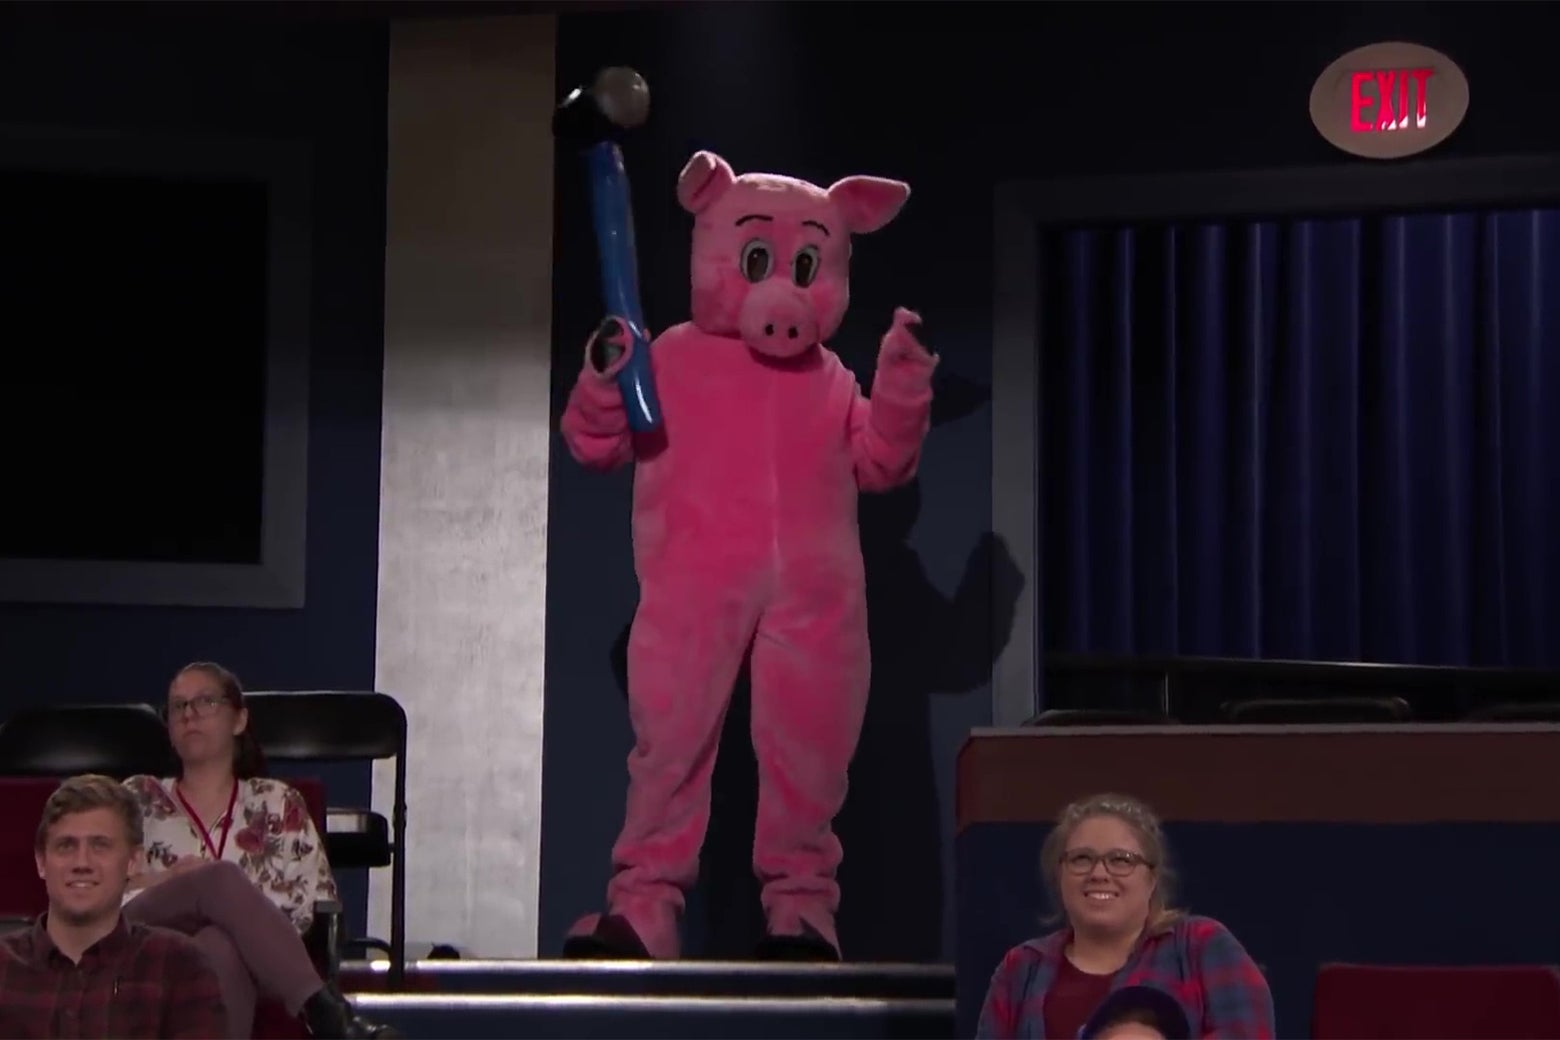 A person in a pig costume wielding an inflatable mallet at the back of the Conan set.